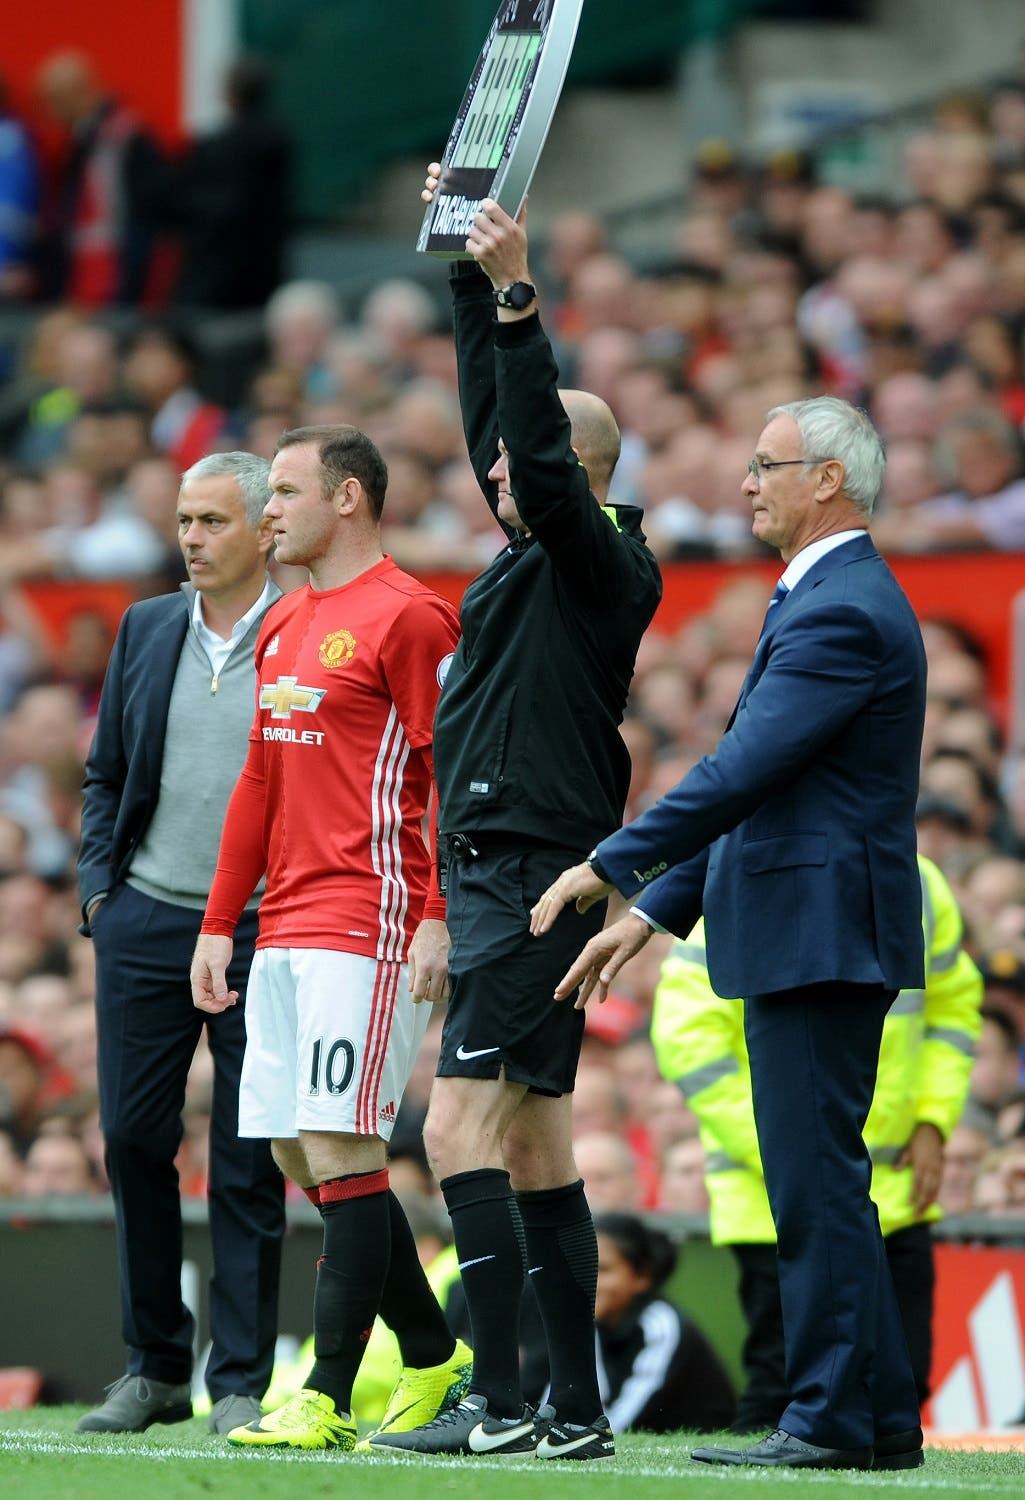 Manchester United manager Jose Mourinho, left, brings on Manchester United's Wayne Rooney as a substitute Saturday's game (Photo: AP/Rui Vieira)